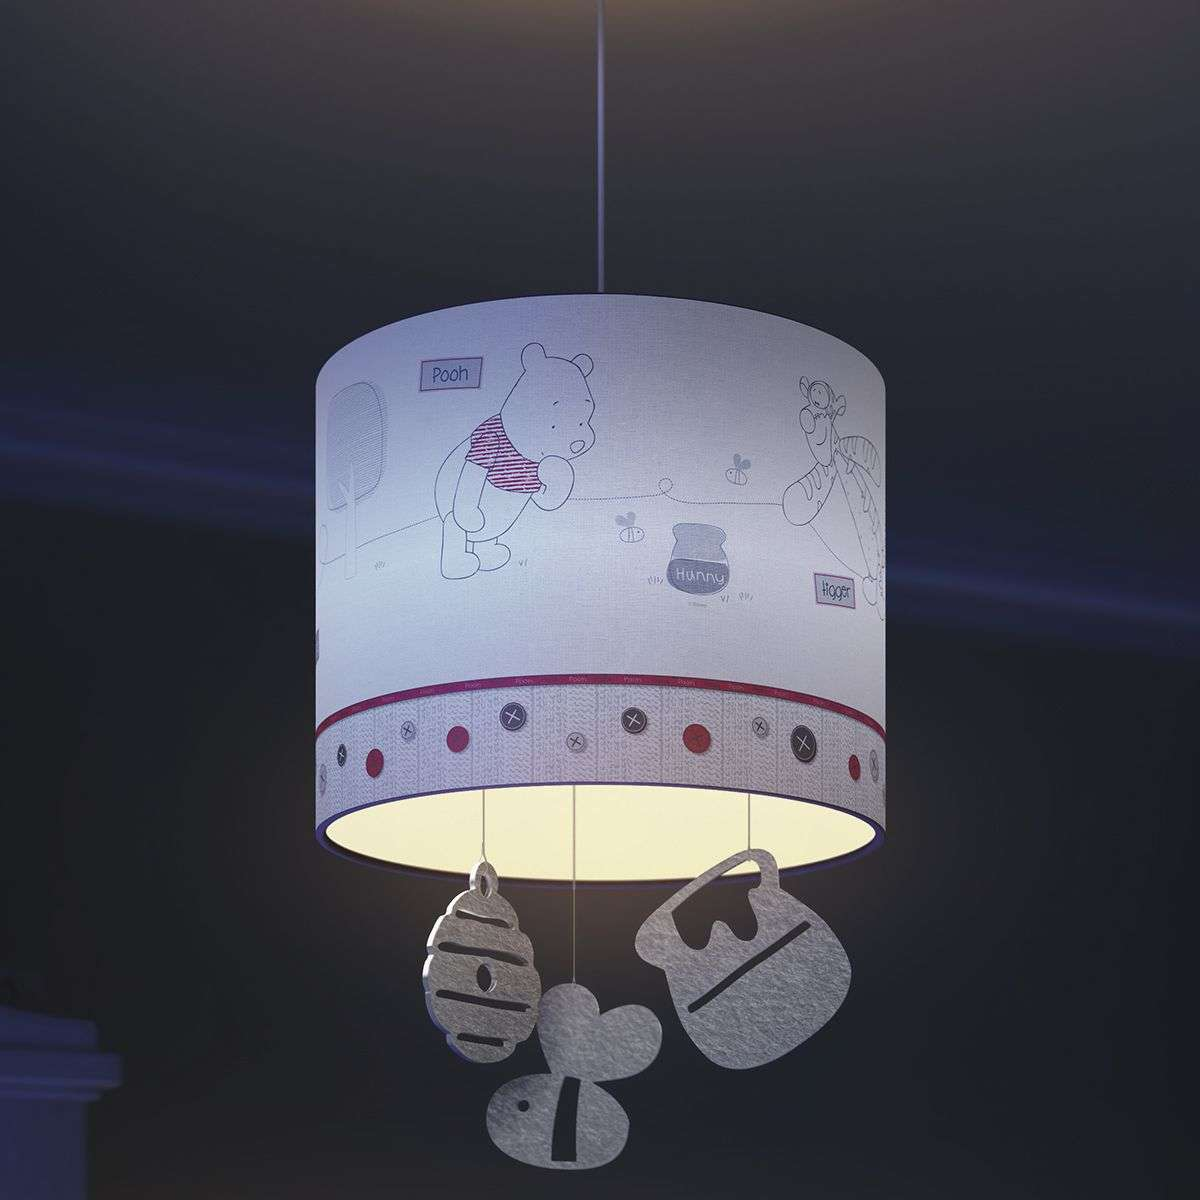 Winnie the pooh pendant light for children lights winnie the pooh pendant light for children 7531526 31 aloadofball Image collections